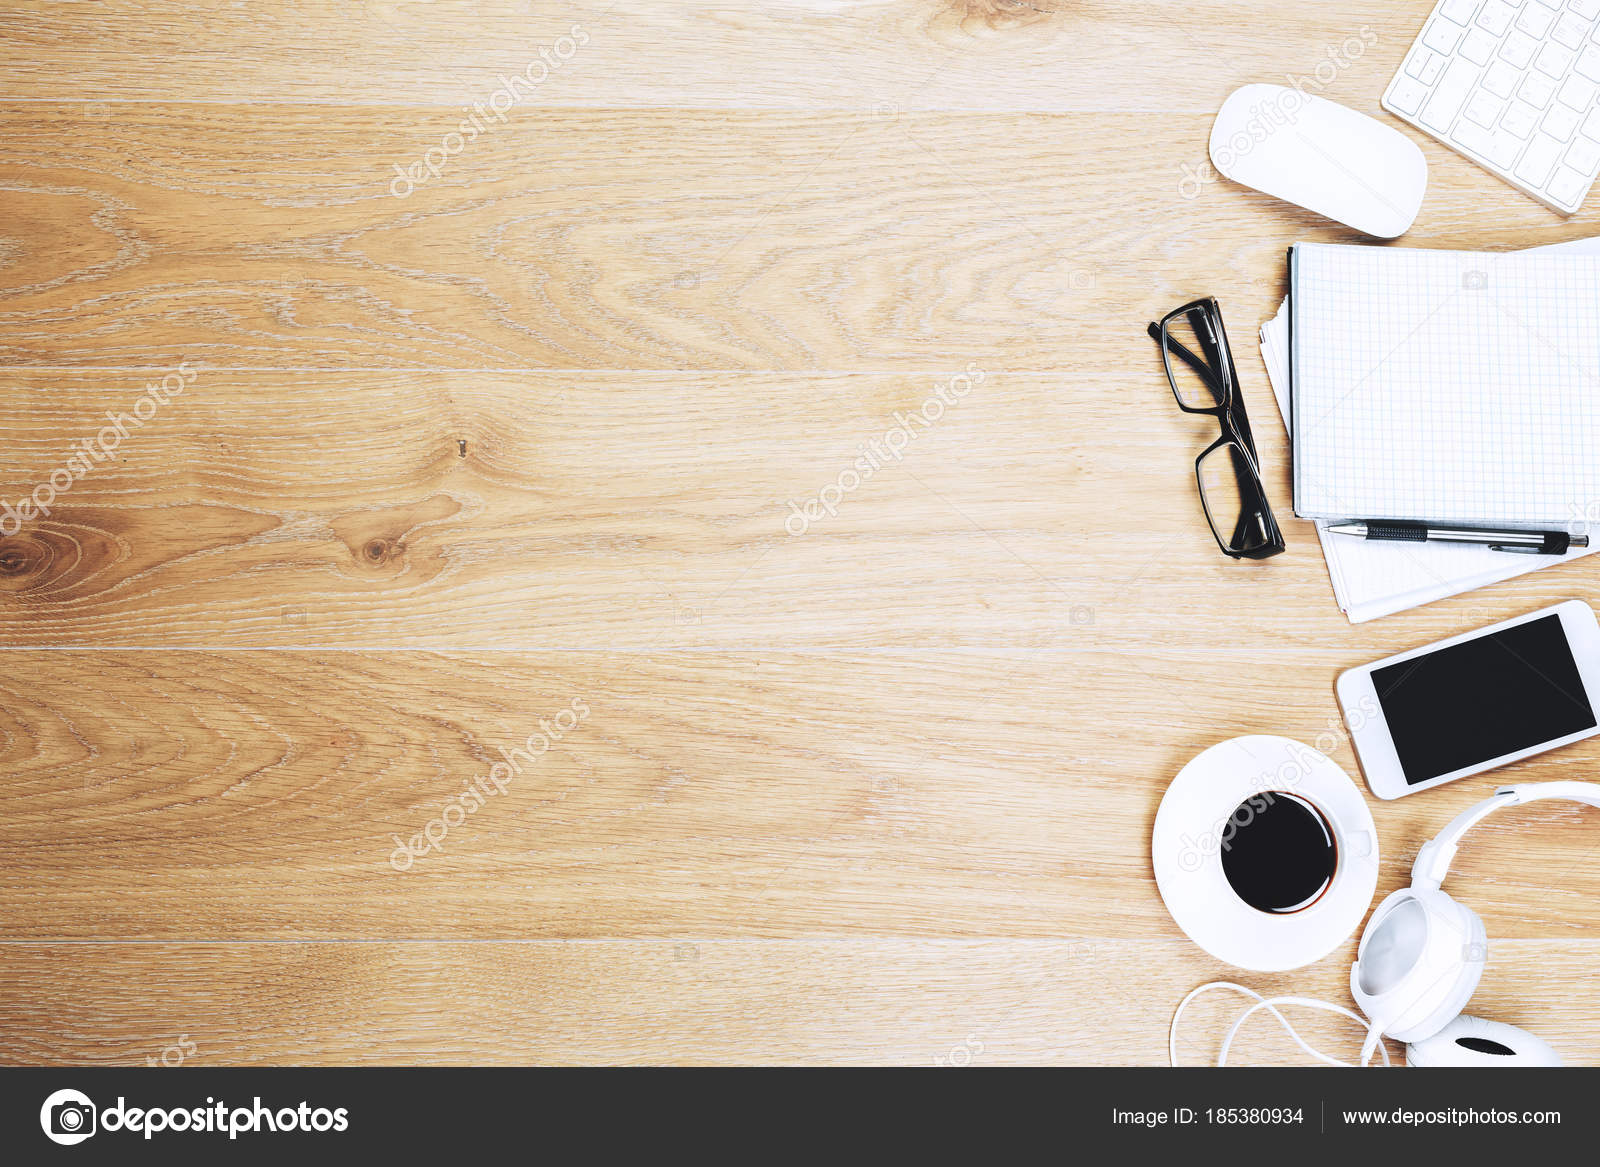 Wooden Office Desk Top With Items Stock Photo